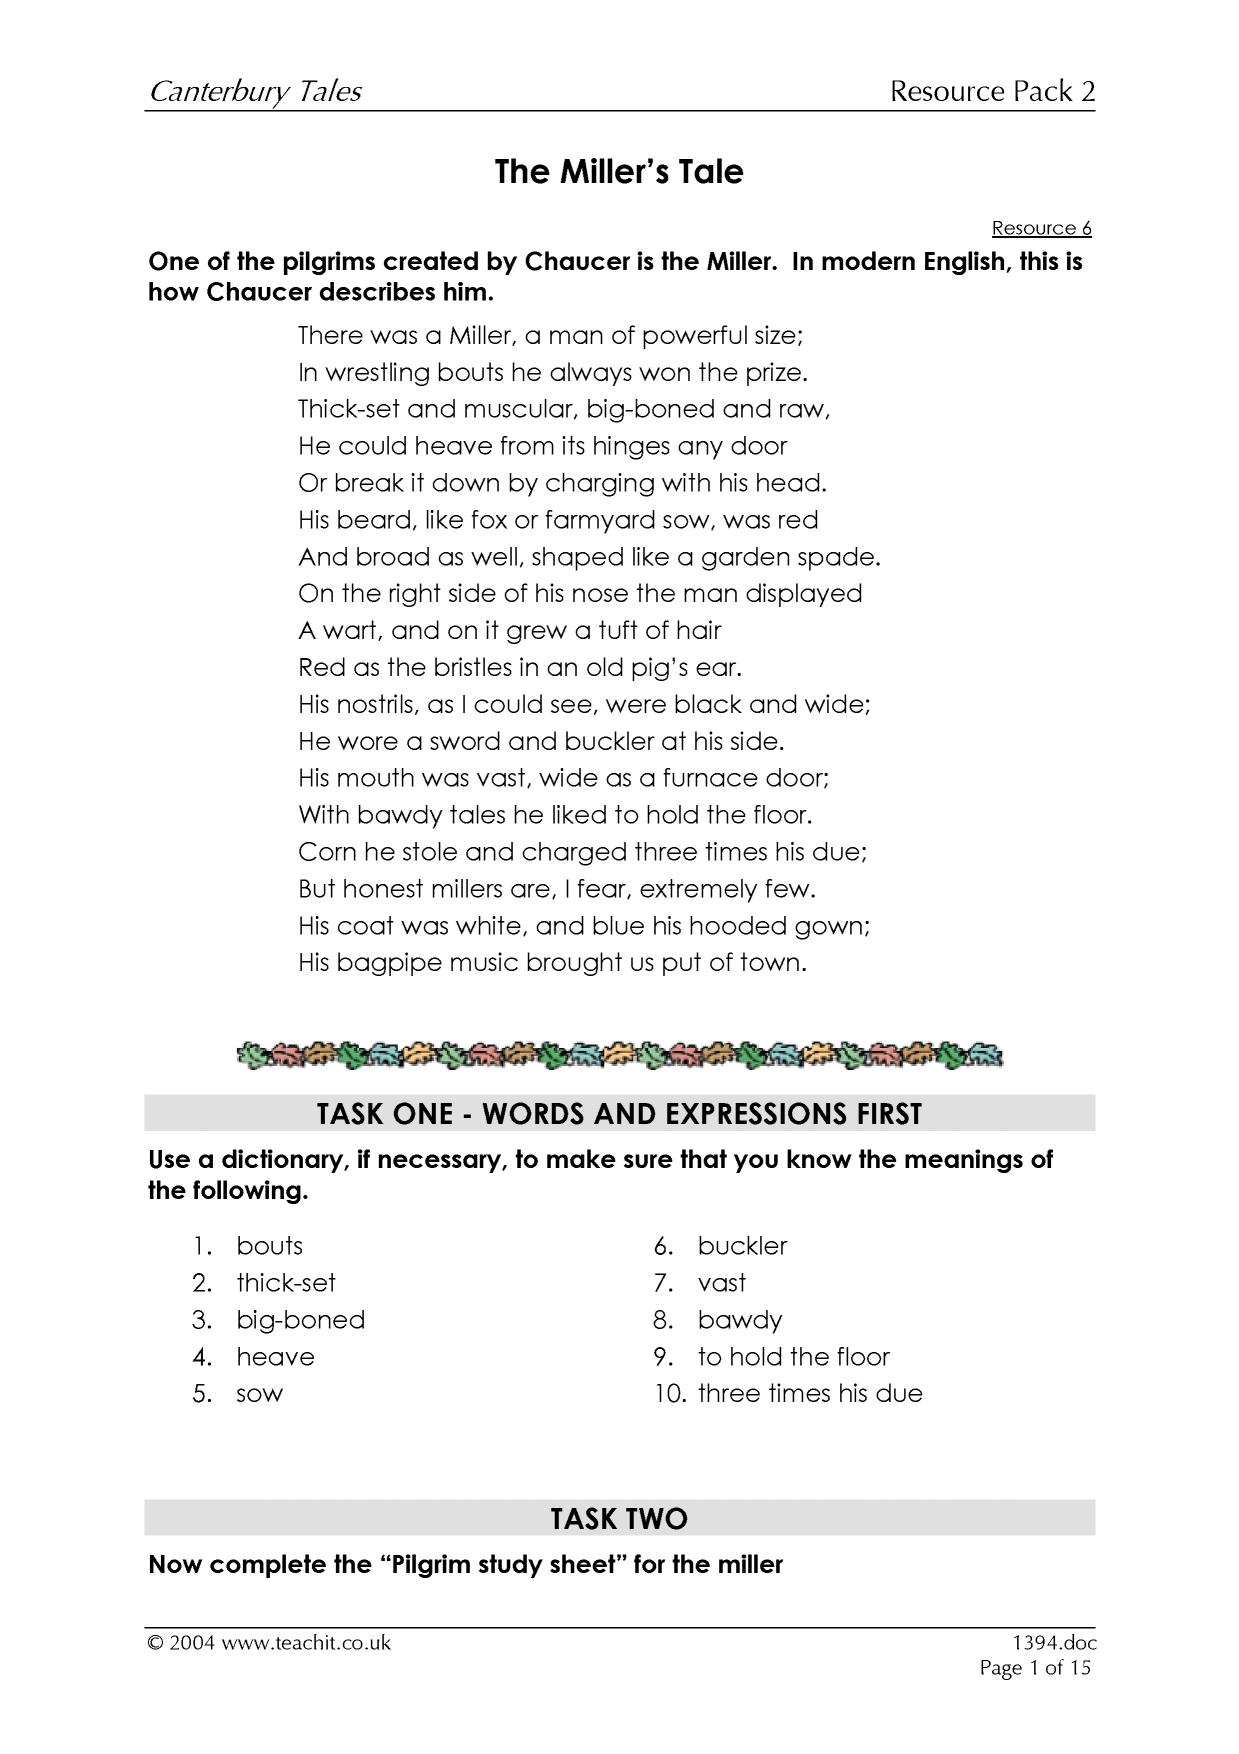 essay questions on the canterbury tales Ap literature style essay prompts for chaucer's the canterbury tales by crhude in types school work essays & theses, chaucer, and canterbury tales.